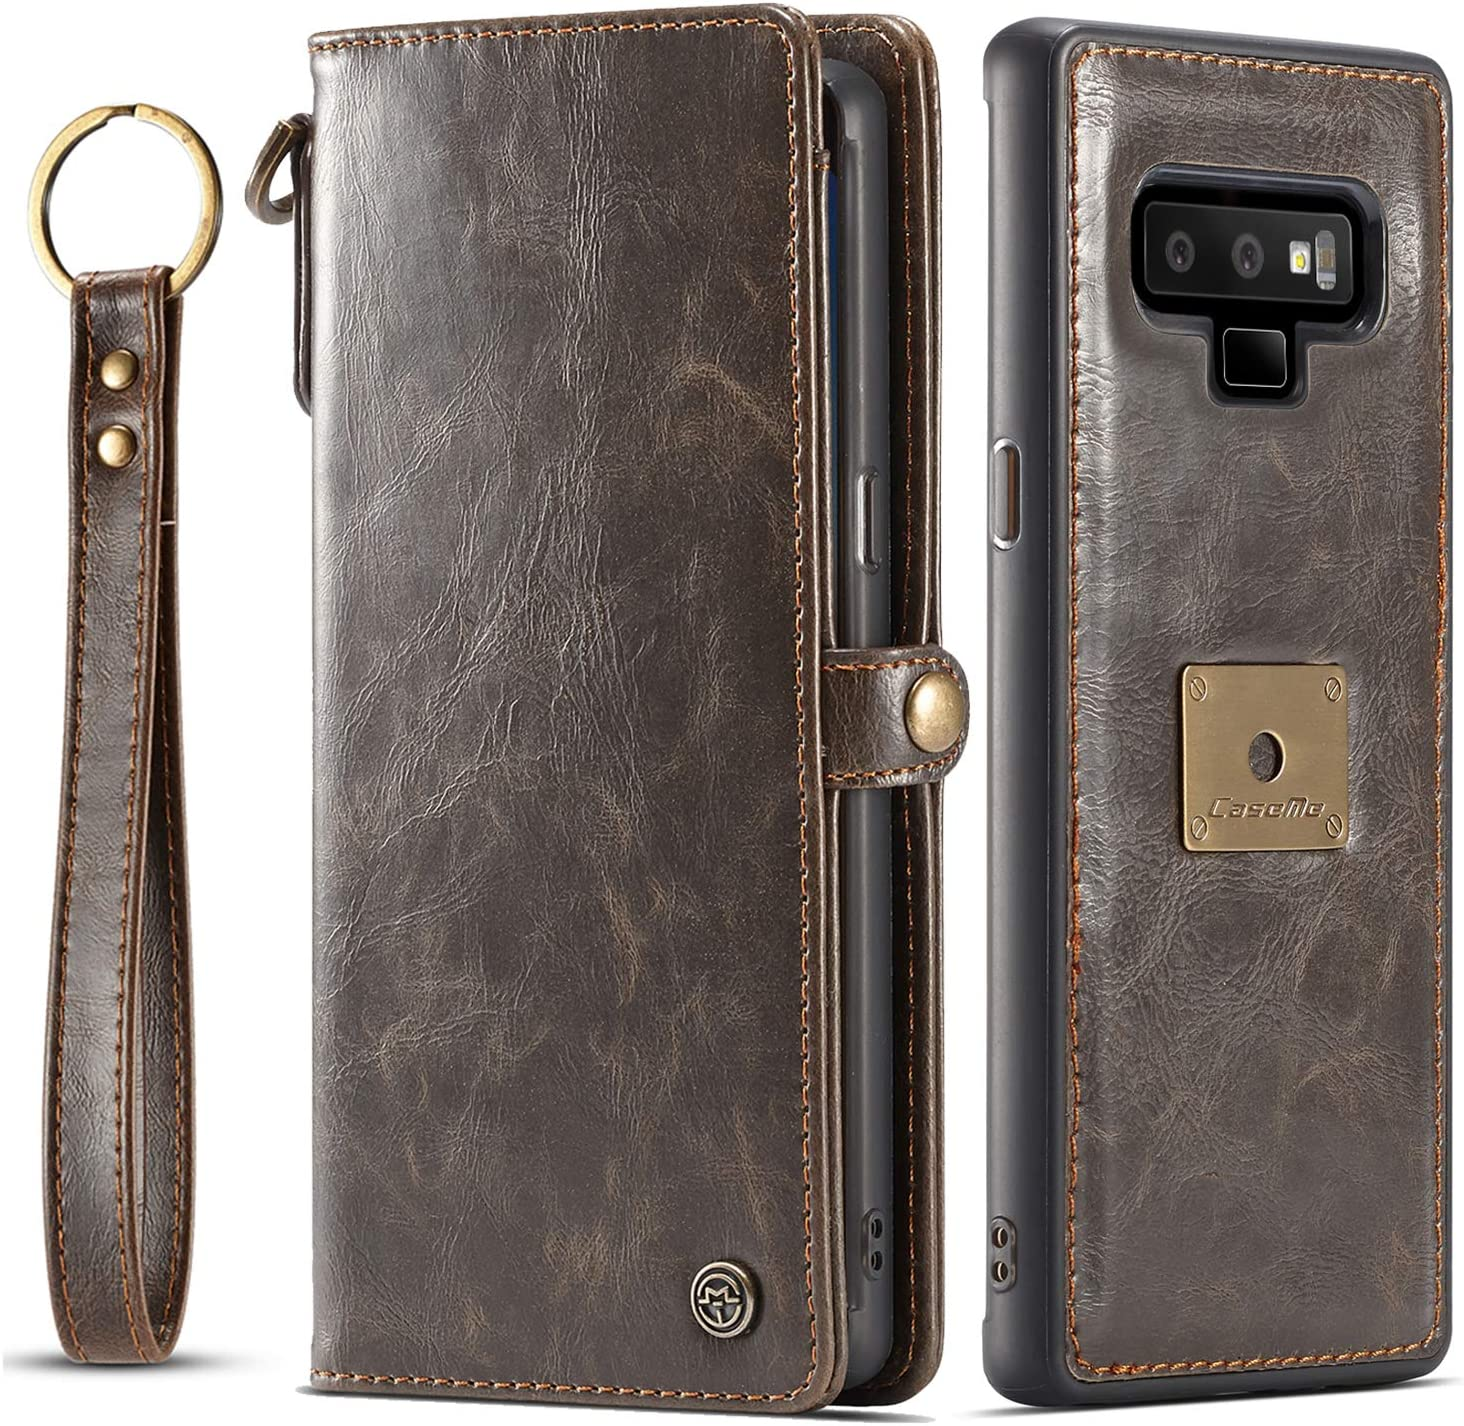 Galaxy Note 9 Case, Samsung Note 9 Case XRPow Detachable Magnetic Leather Wallet Folio Flip Card Slots Removable Slim Cover for Samsung Galaxy Note 9 with Wrist Strap Brown